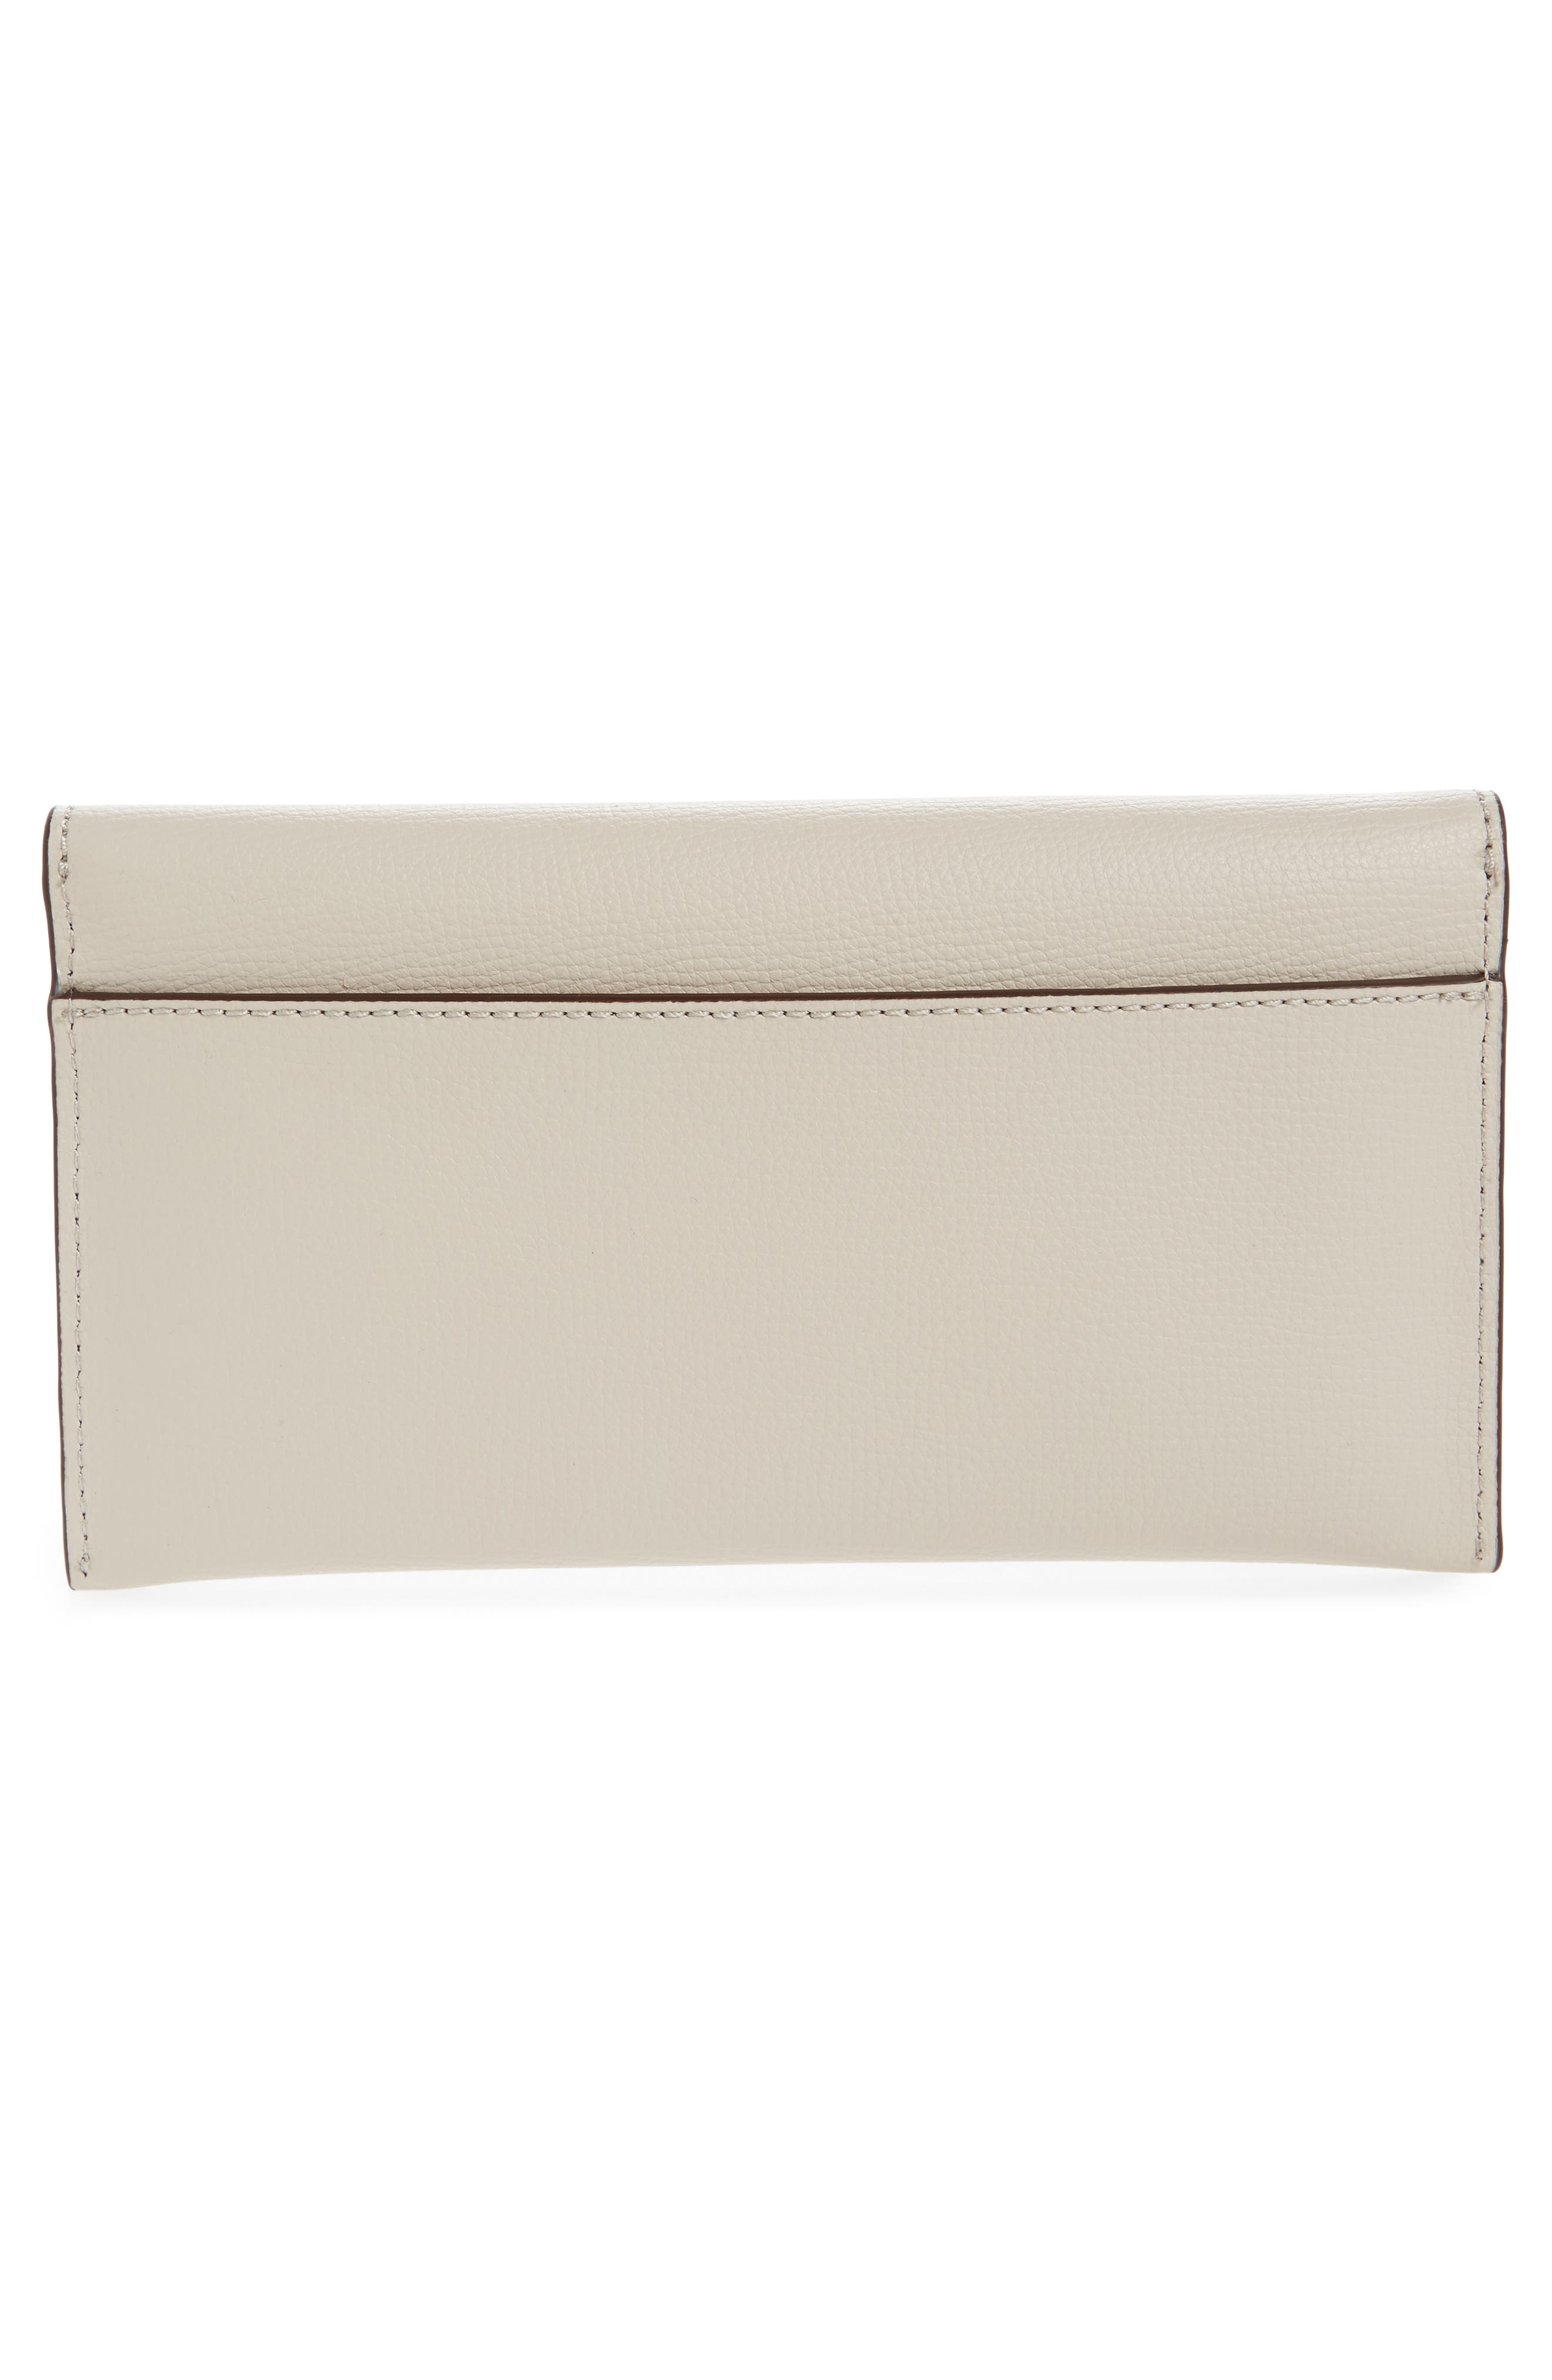 Everything Embellished Leather Wallet,                             Alternate thumbnail 3, color,